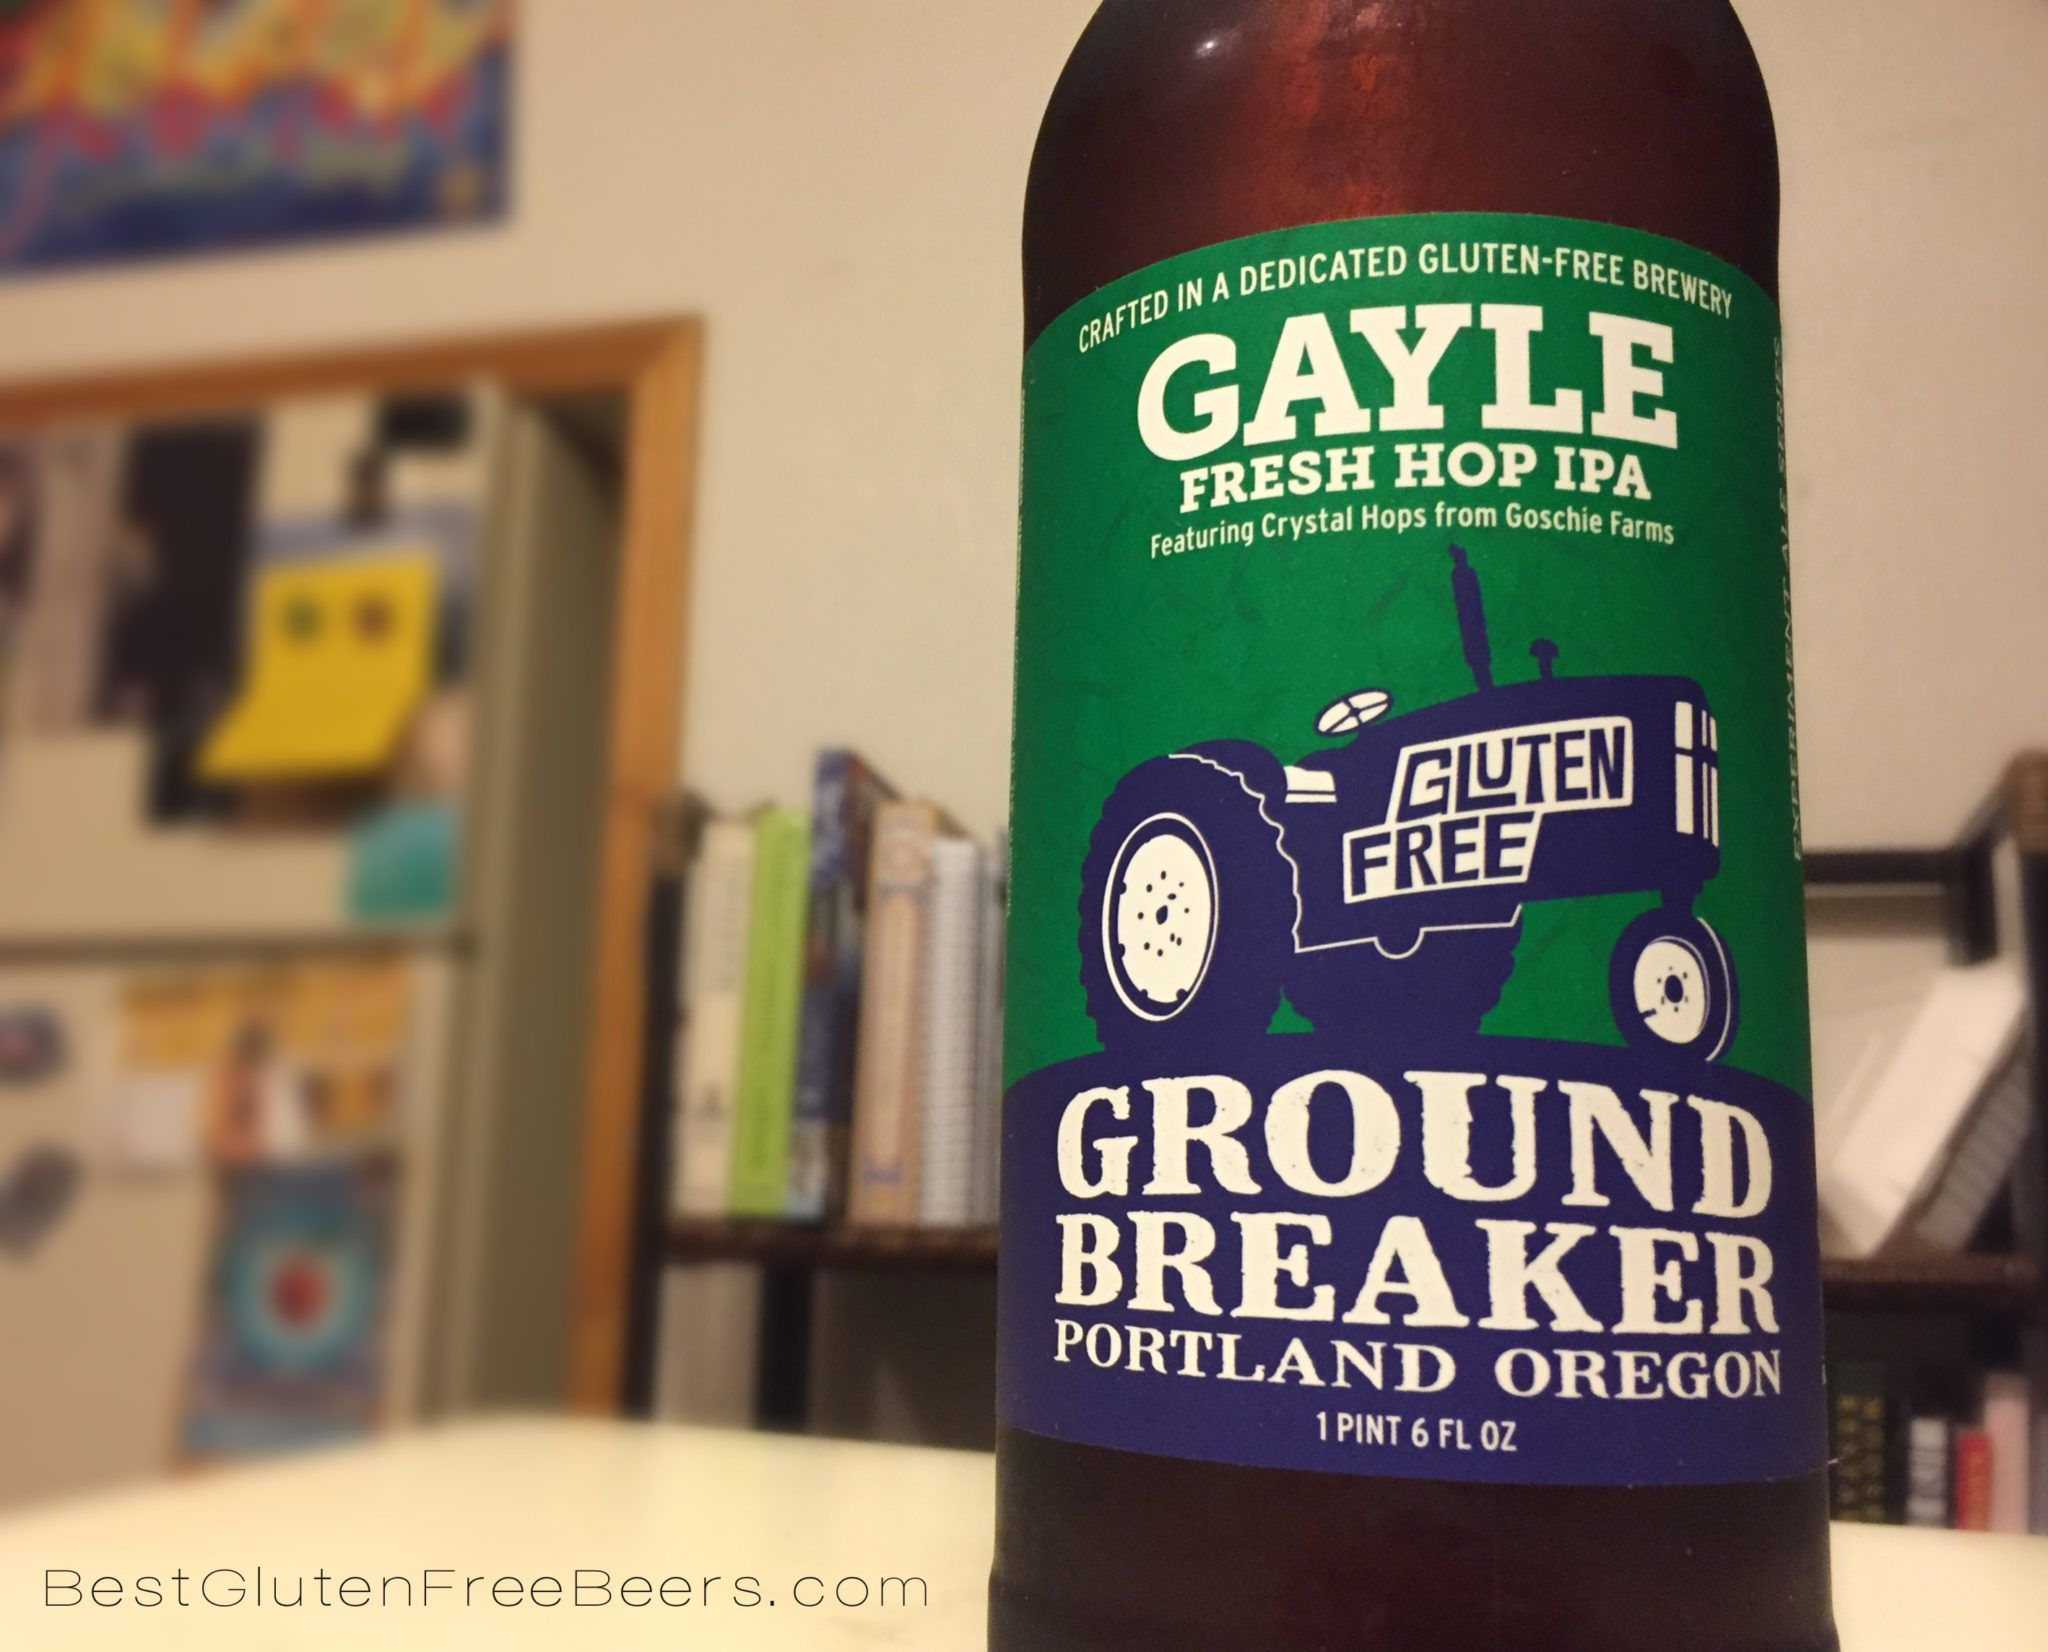 ground breaker brewing gayle fresh hop ipa